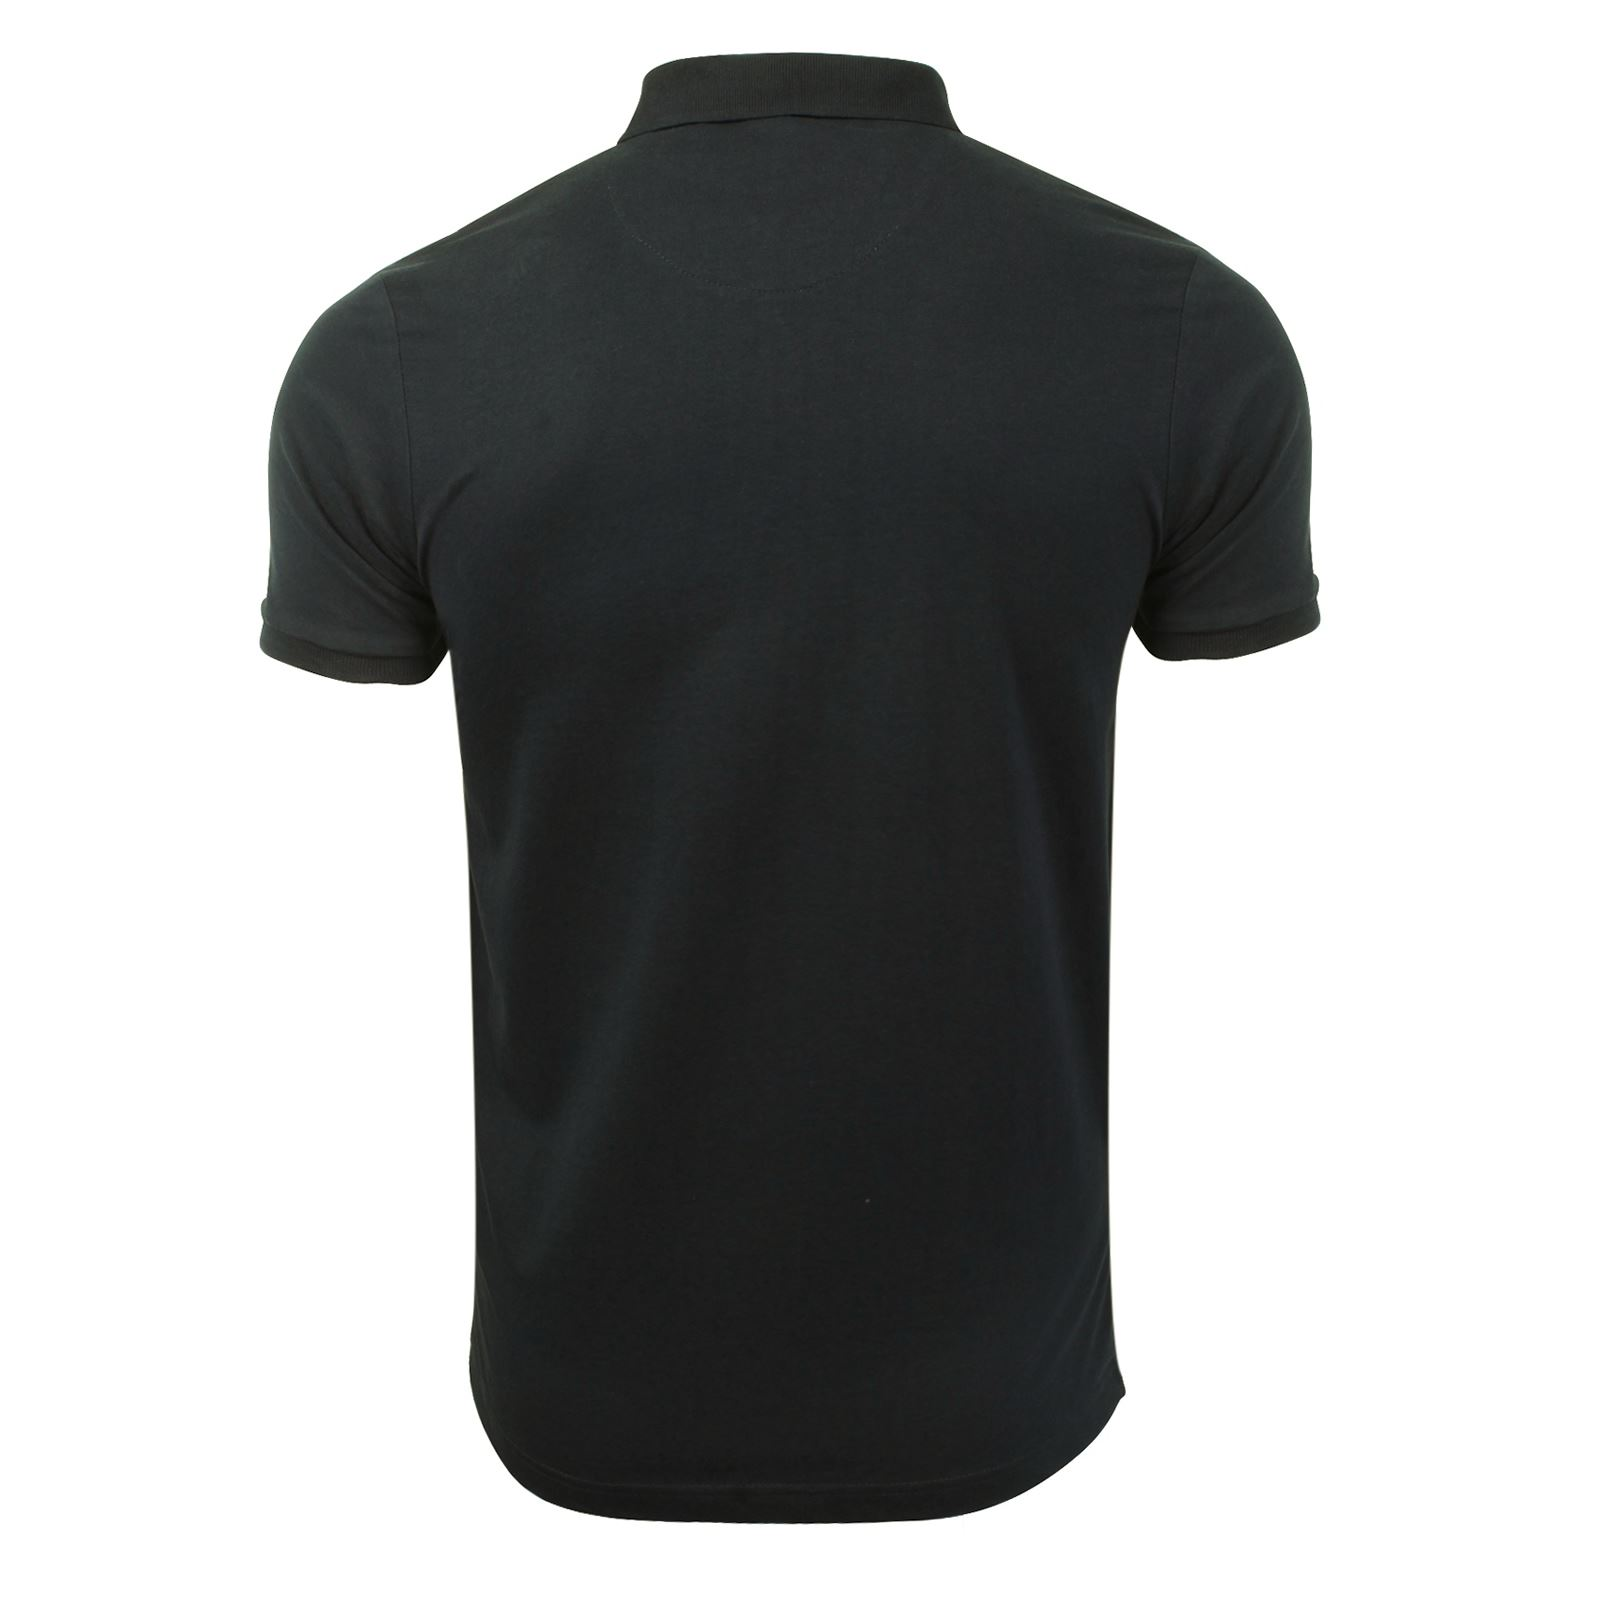 Mens-Polo-T-Shirt-Brave-Soul-Glover-Cotton-Collared-Short-Sleeve-Casual-Top thumbnail 79